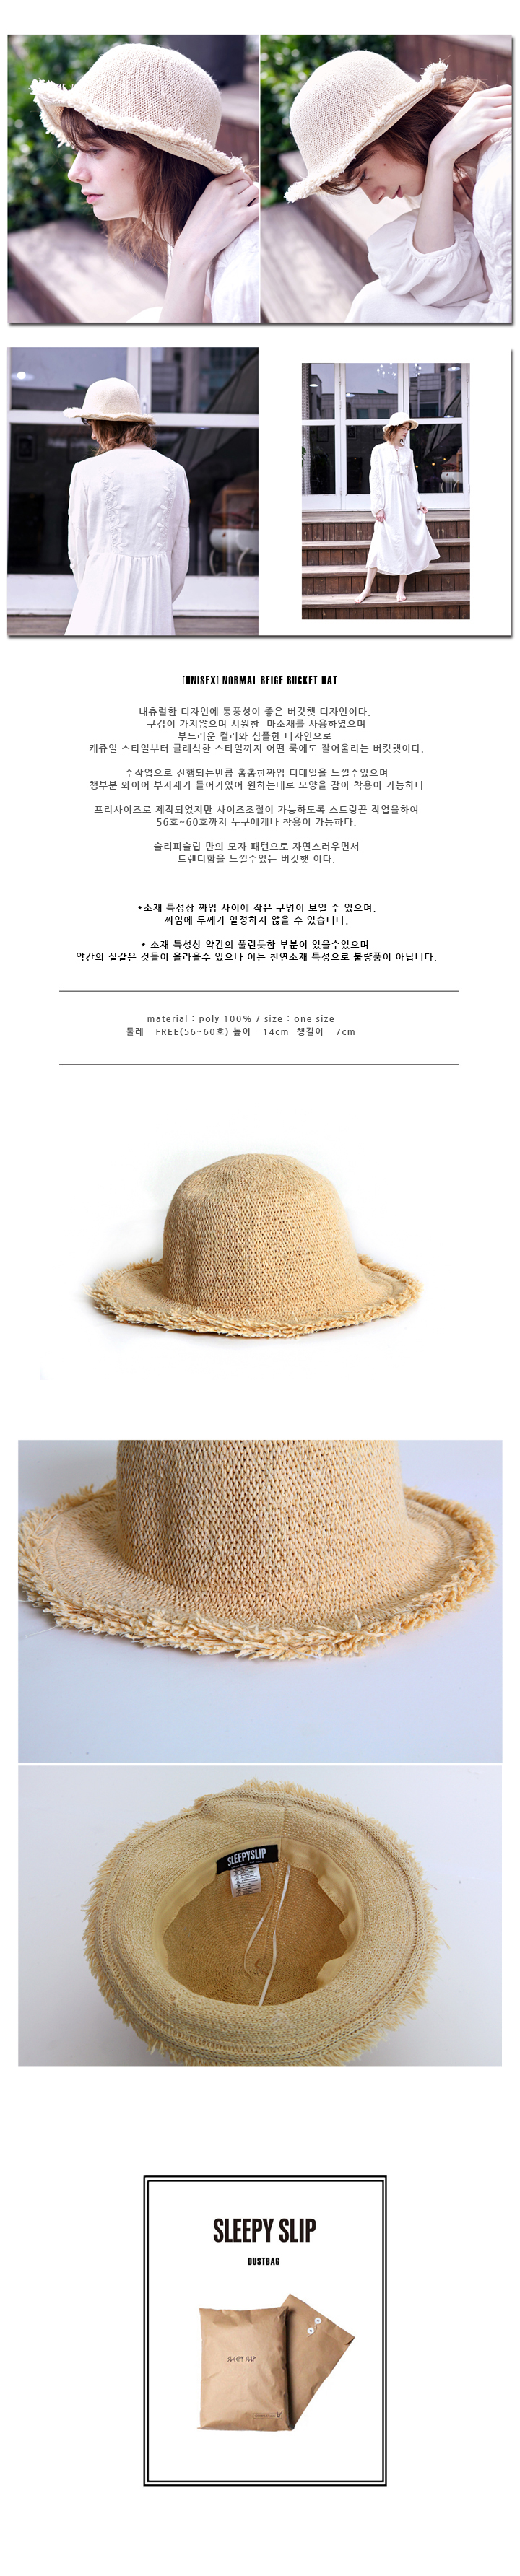 normal buckethat.jpg